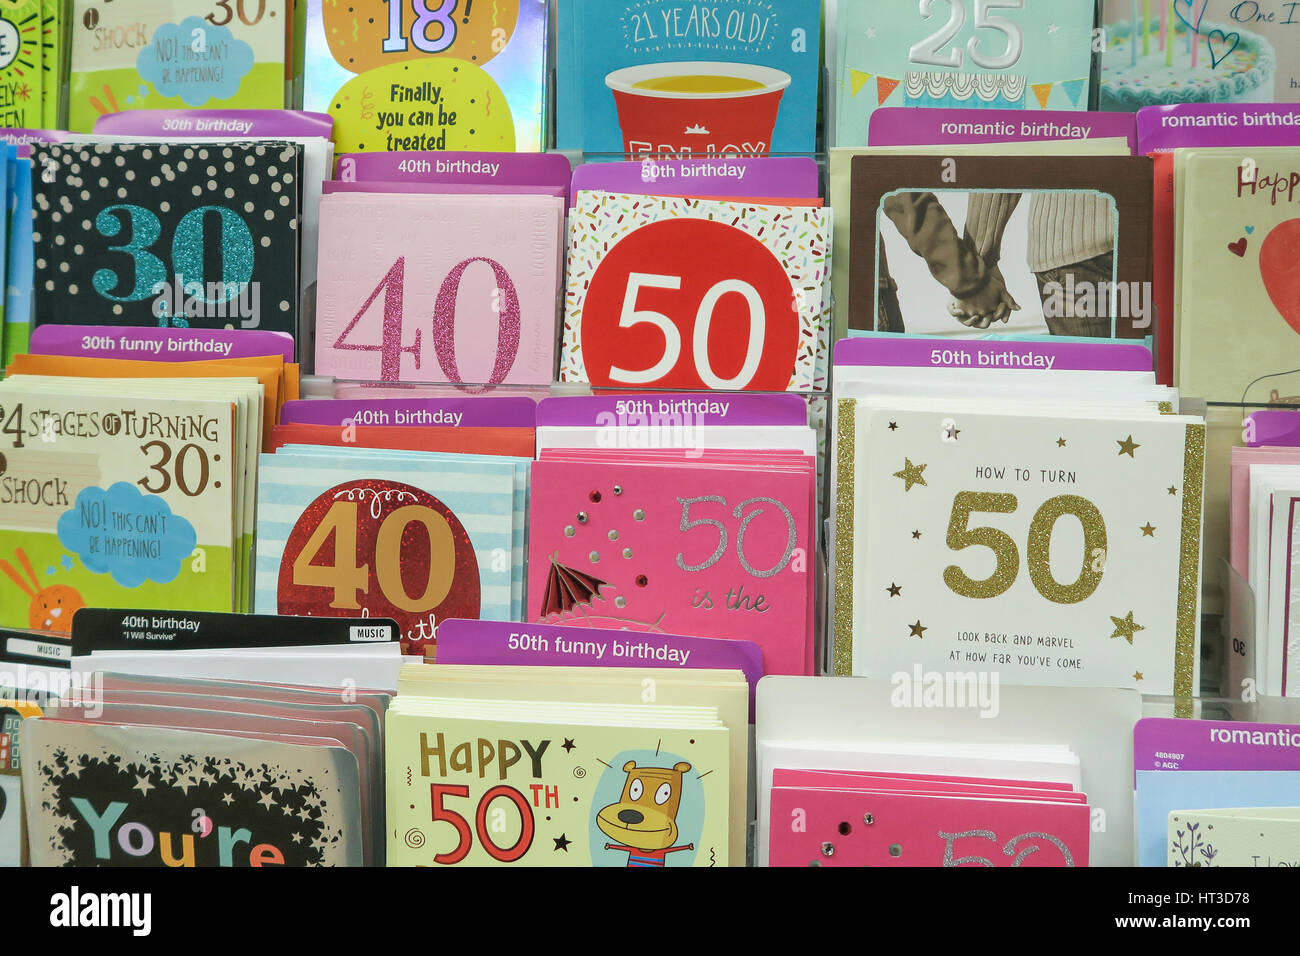 Milestone birthday cards at kmart nyc usa stock photo 135300572 milestone birthday cards at kmart nyc usa kristyandbryce Image collections